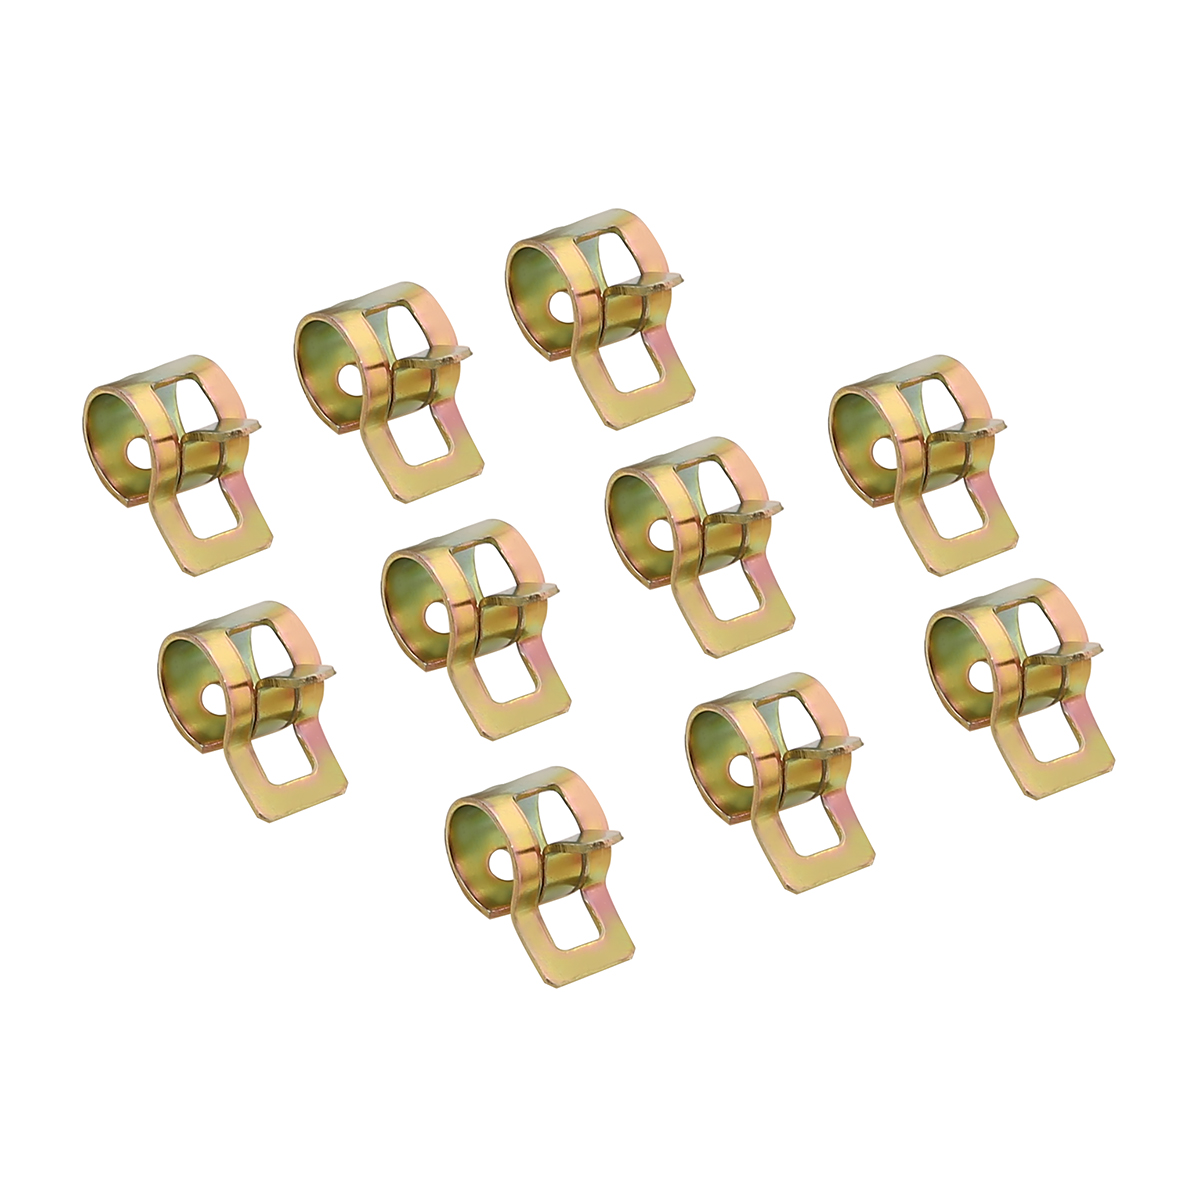 New Arrival 60Pcs Car Spring Clip Fuel Oil Water Hose Pipe Tube Clamp Fastener 6-15mm Car Styling Replacement Clips